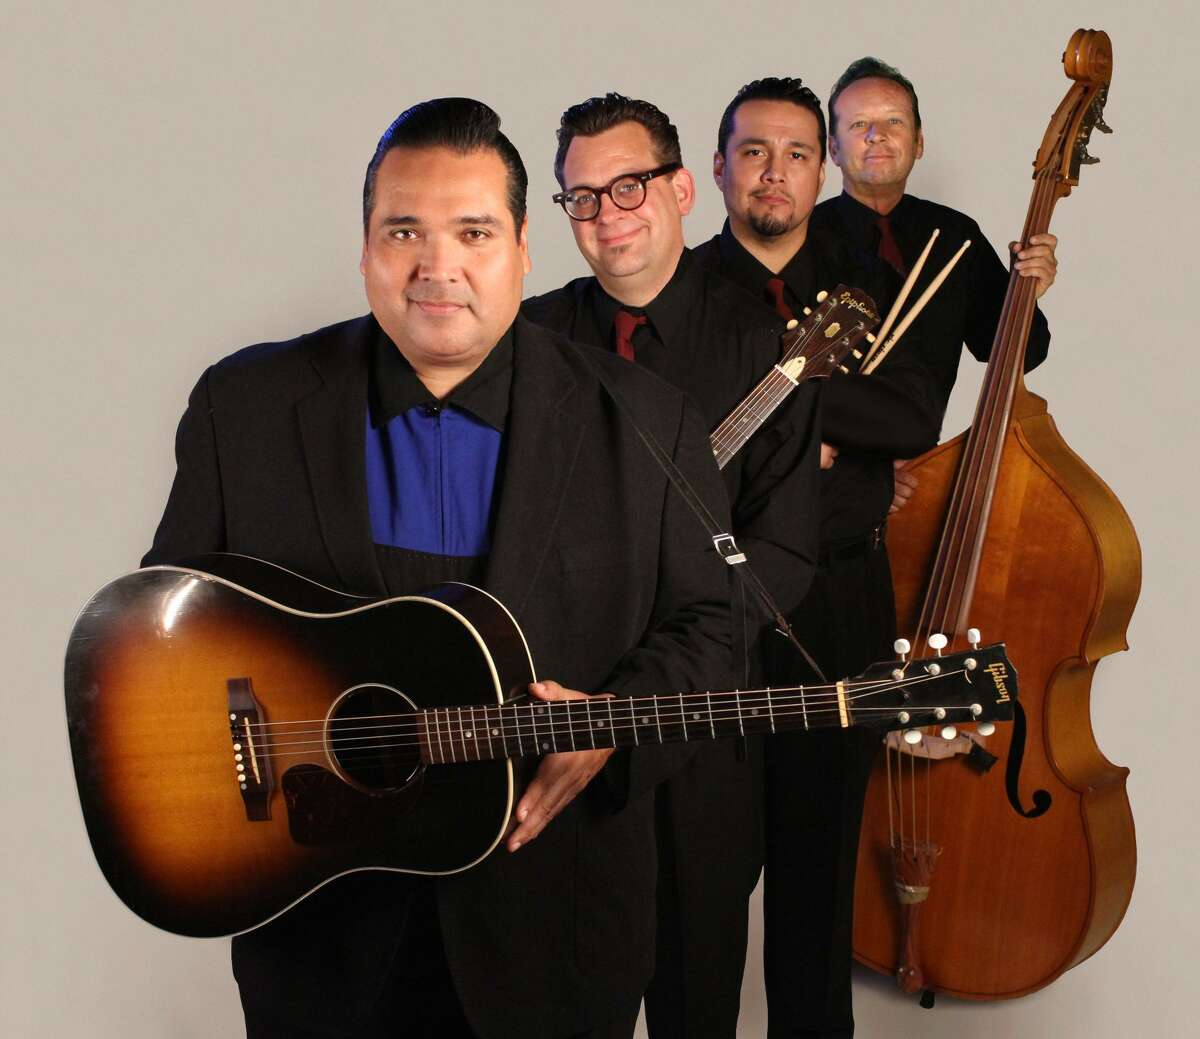 Big Sandy & His Fly-Rite Boys return to Cafe Nine in New Haven for a Go Kat Go! Presents show this Friday, Nov. 9, 2018 at 9:30 p.m. Little Lesley & the Bloodshots open. Tickets are $12 in advance or $15 at the door, available in advance at www.cafenine.com.